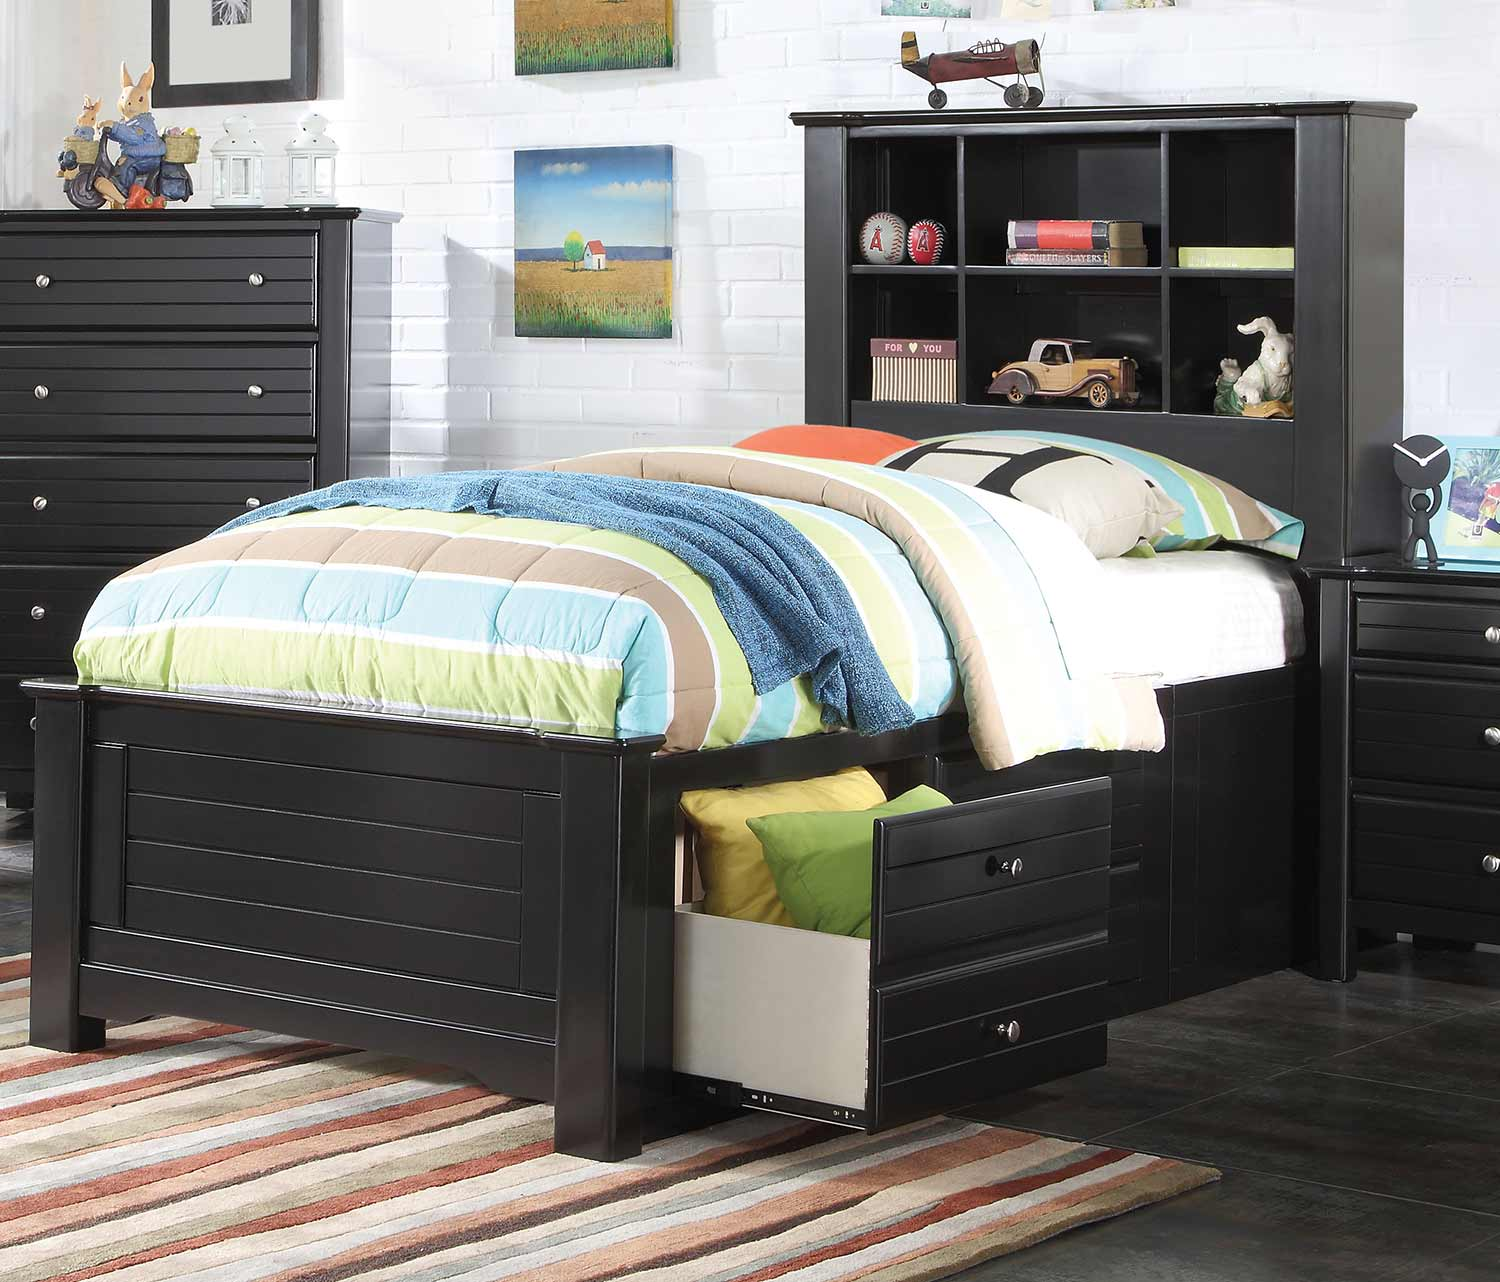 Acme Mallowsea Bed with Storage Rail - Black